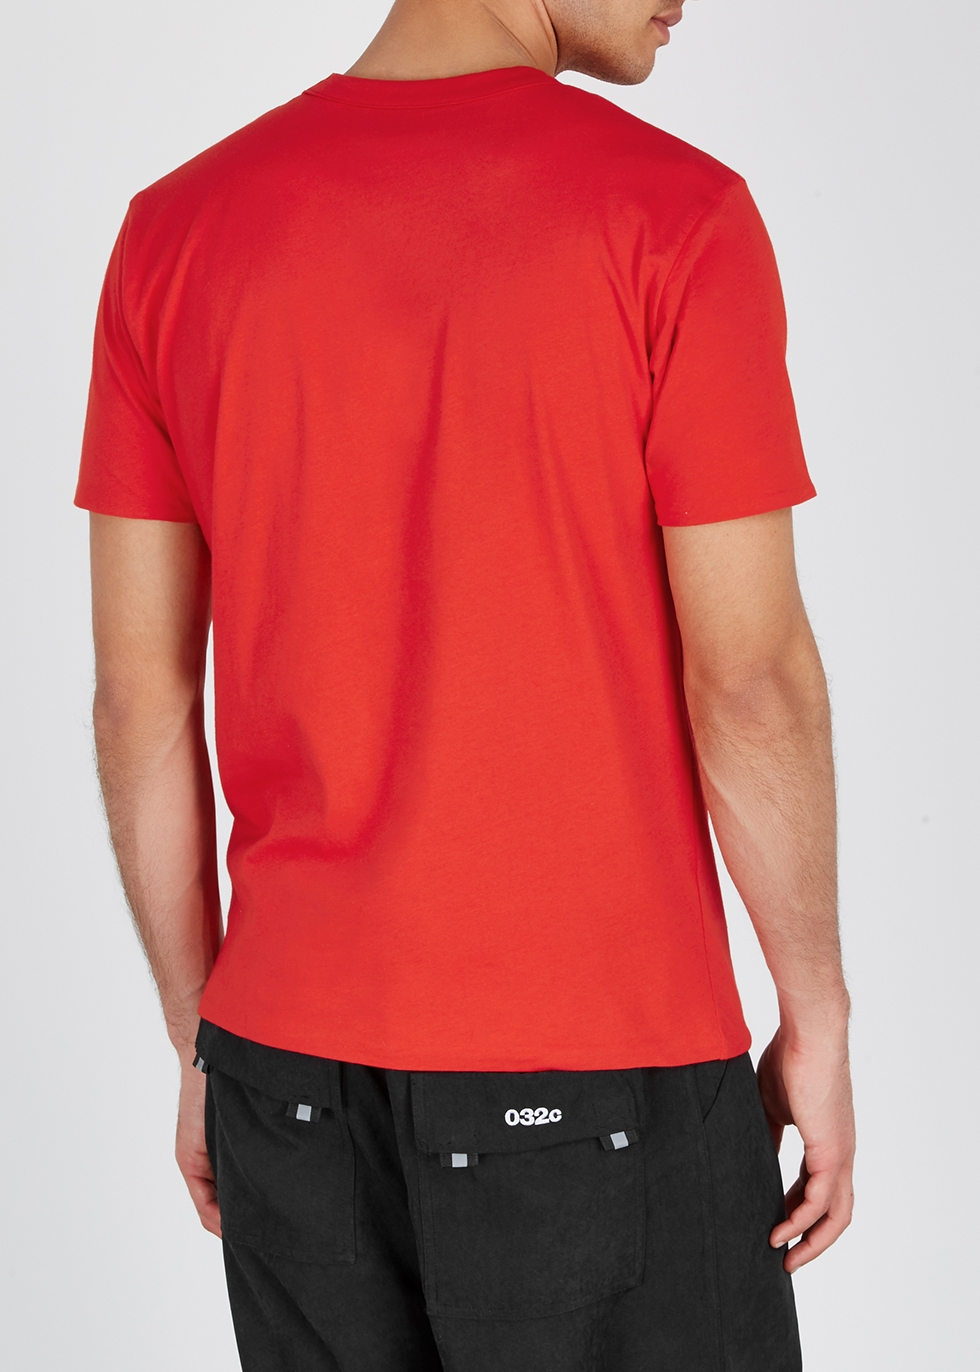 Red reversible cotton T-shirt - 032c